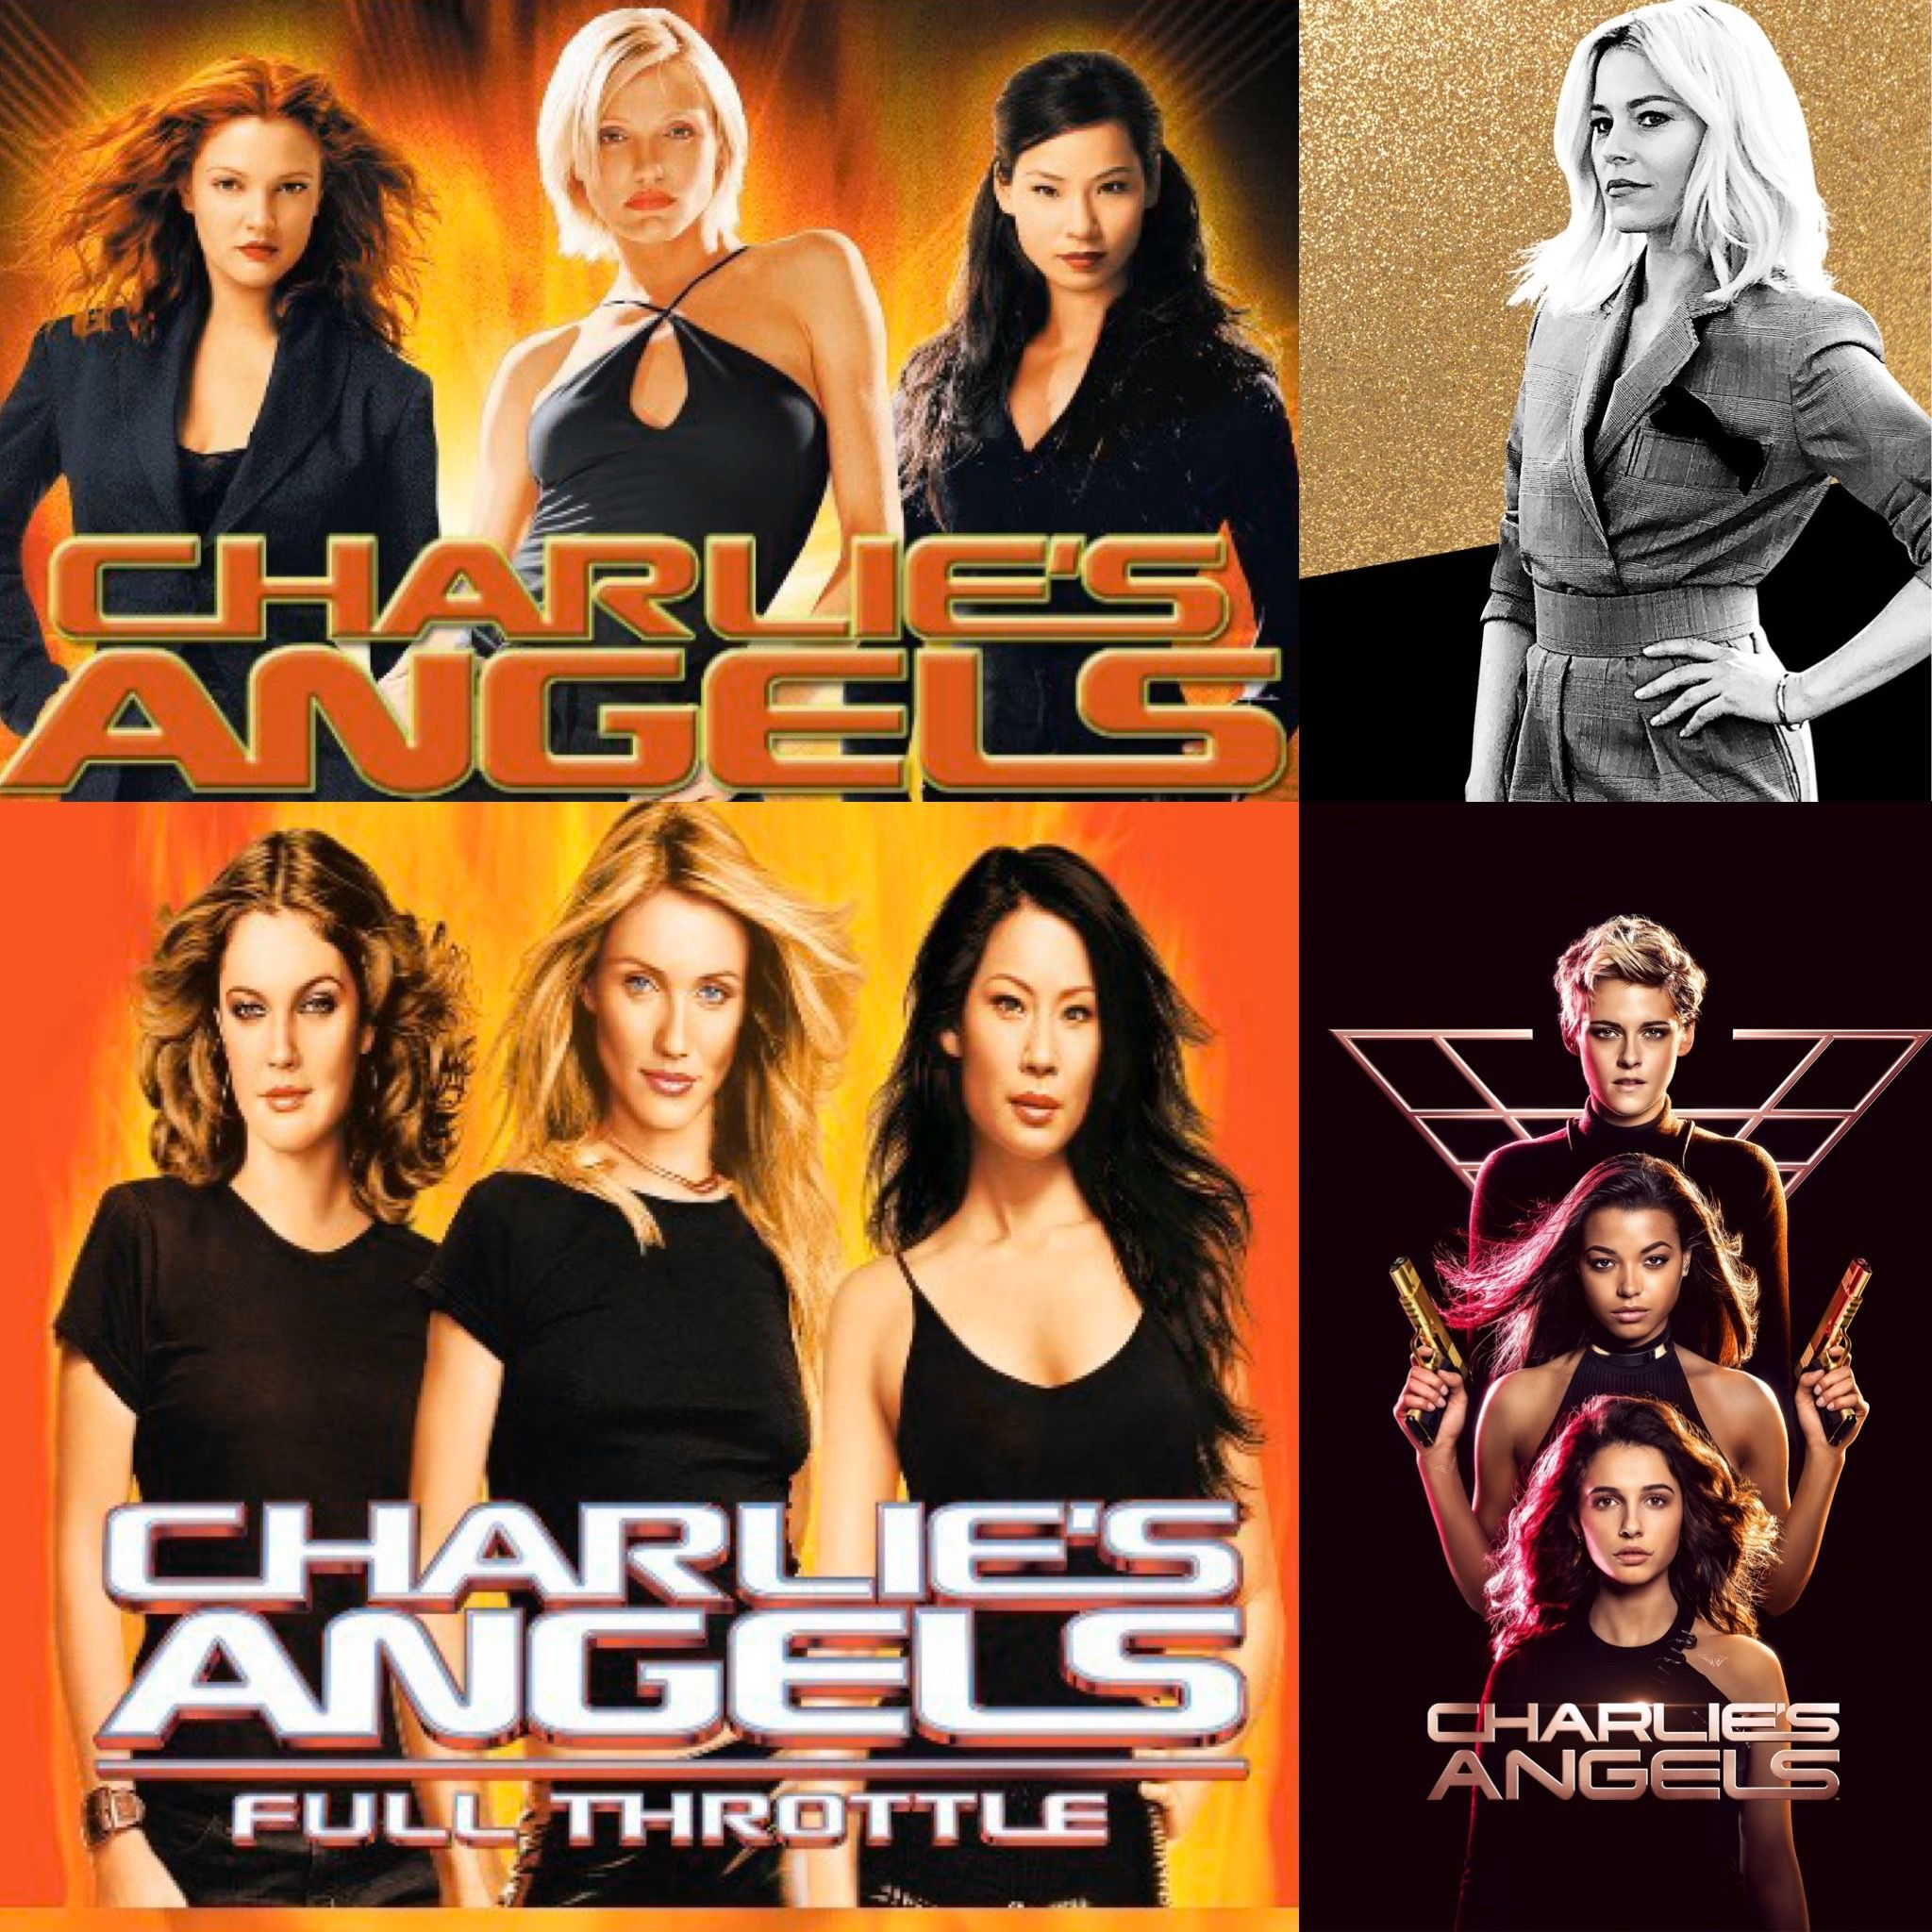 Charlies Angels Film Evolution | Charlies angels, Charlie, Film